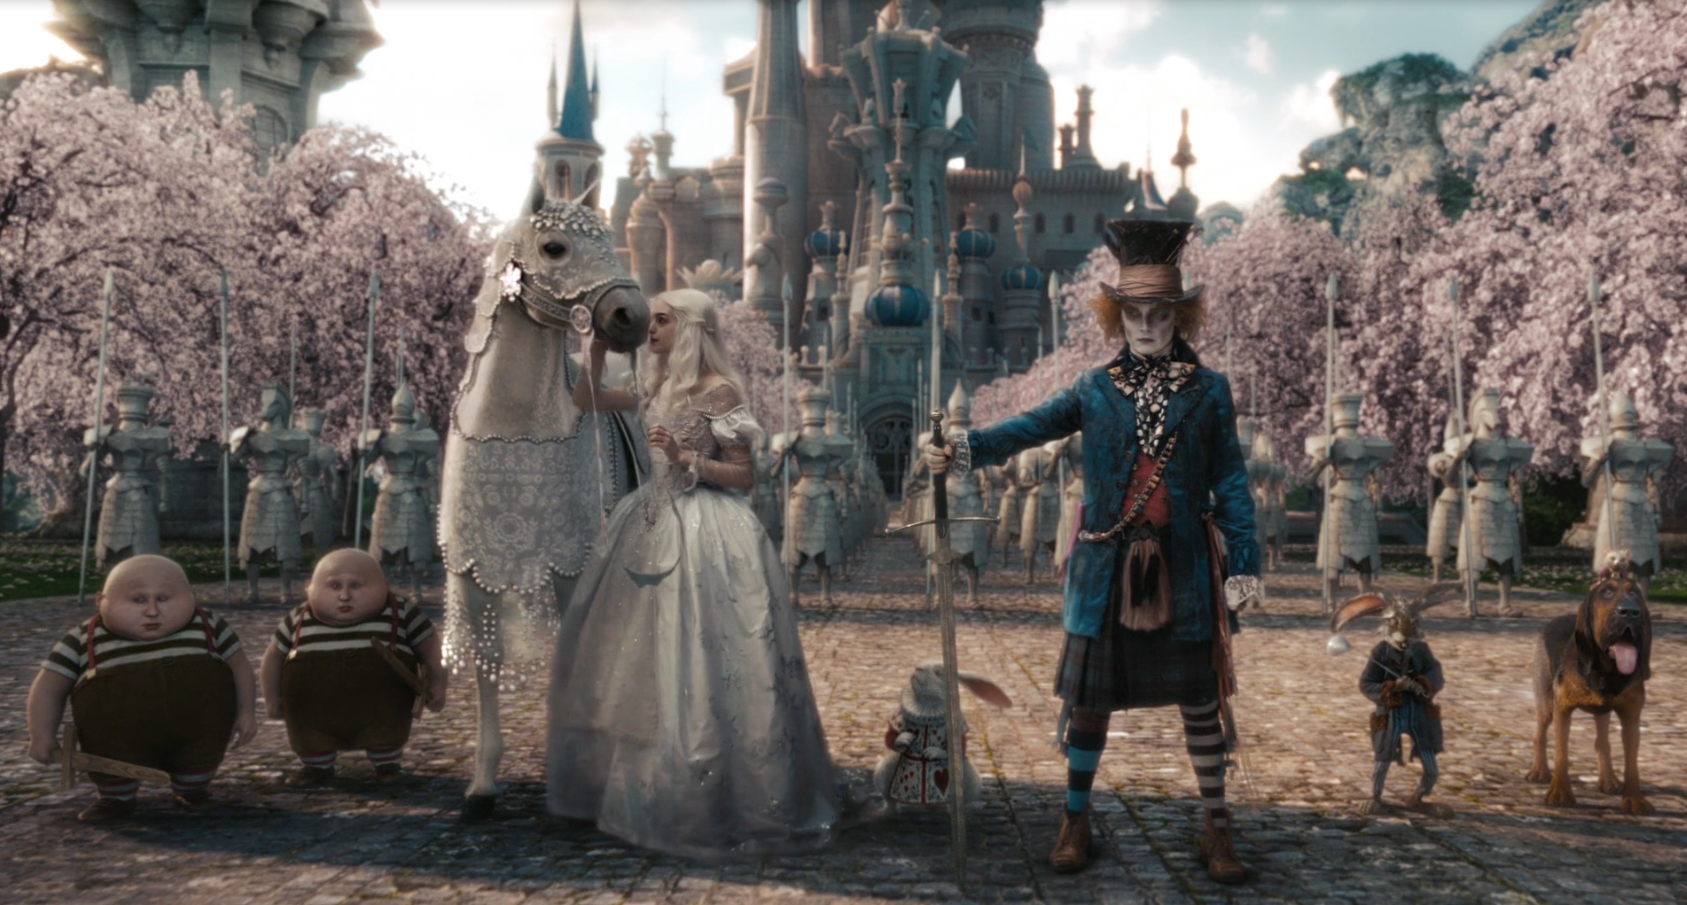 alice in wonderland disney tim burton johnny depp 2010